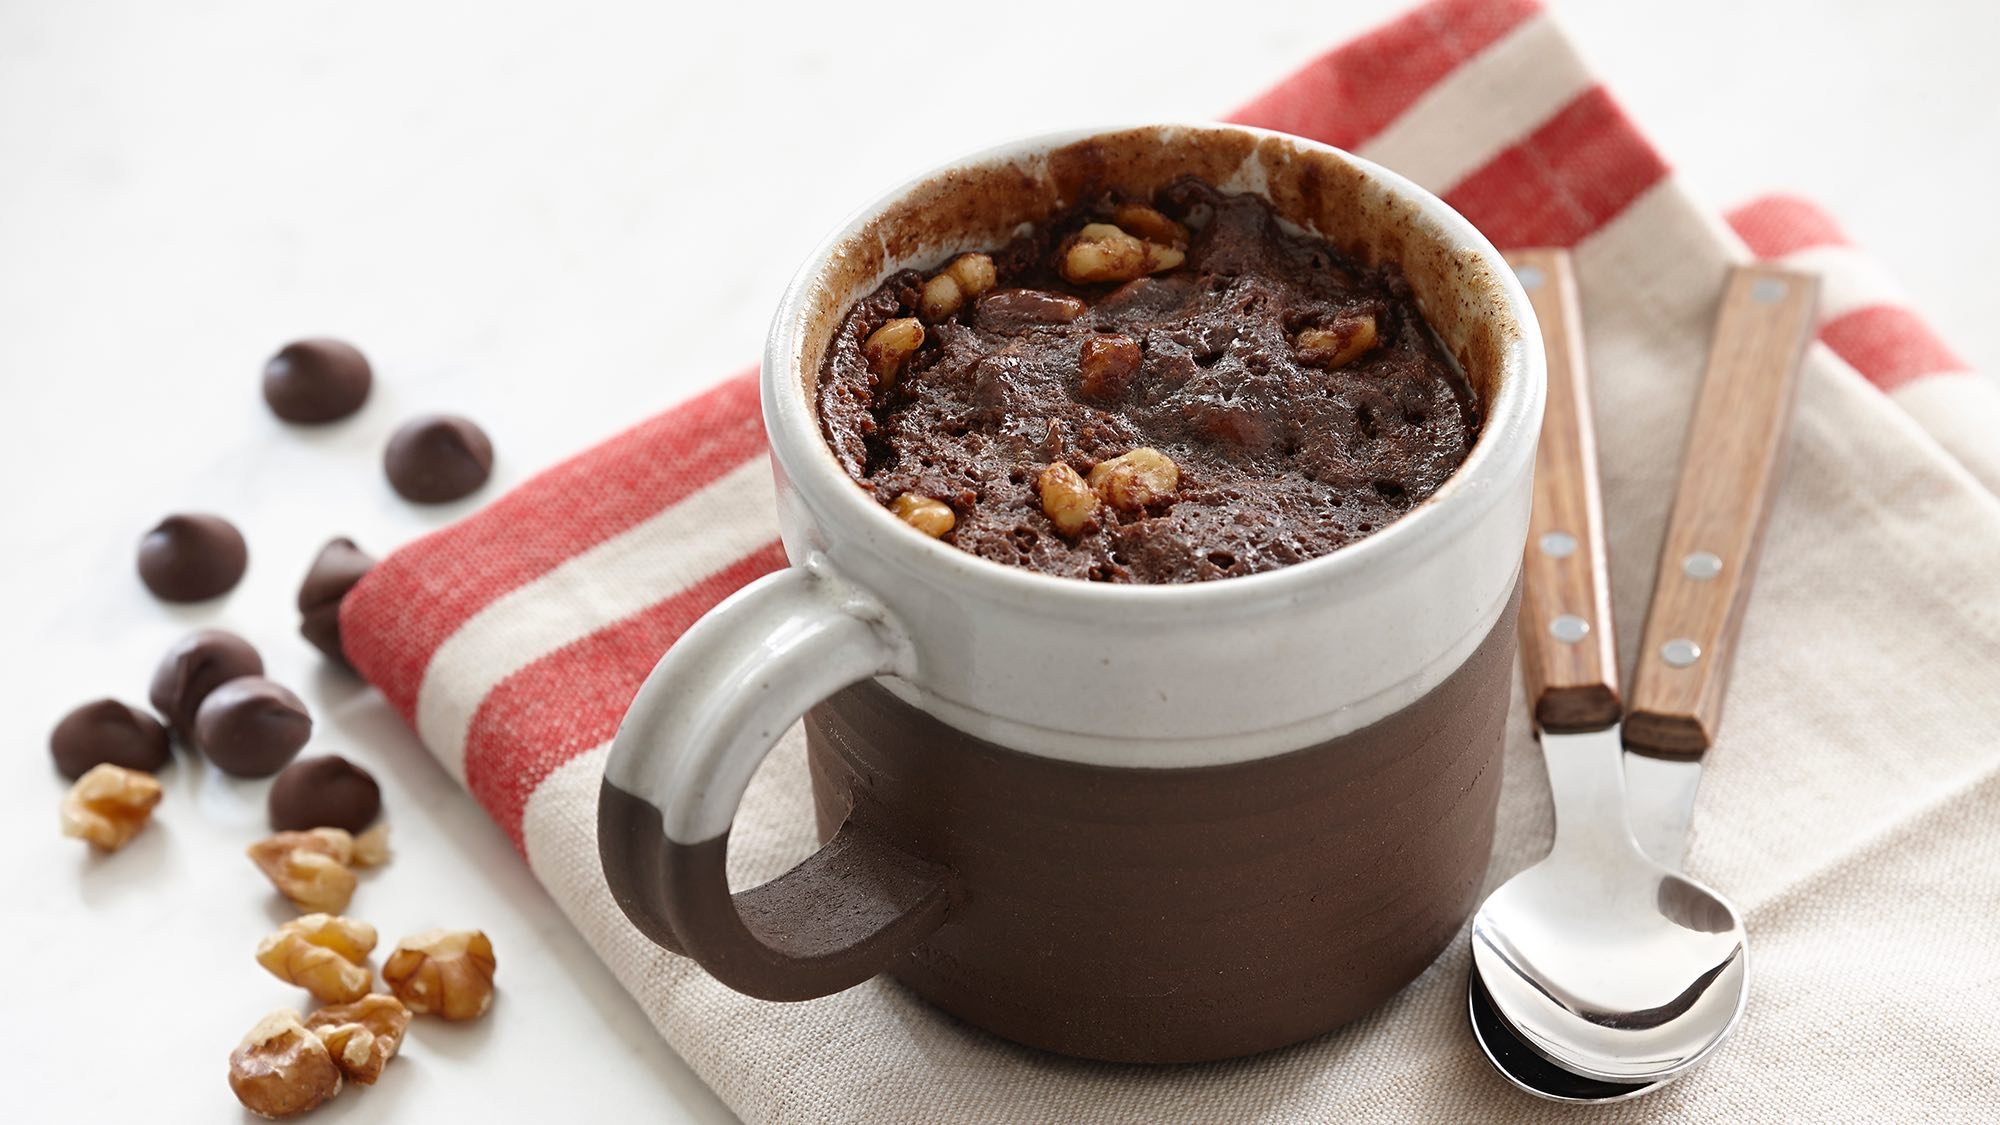 McCormick Spiced Fudged Mug Brownie